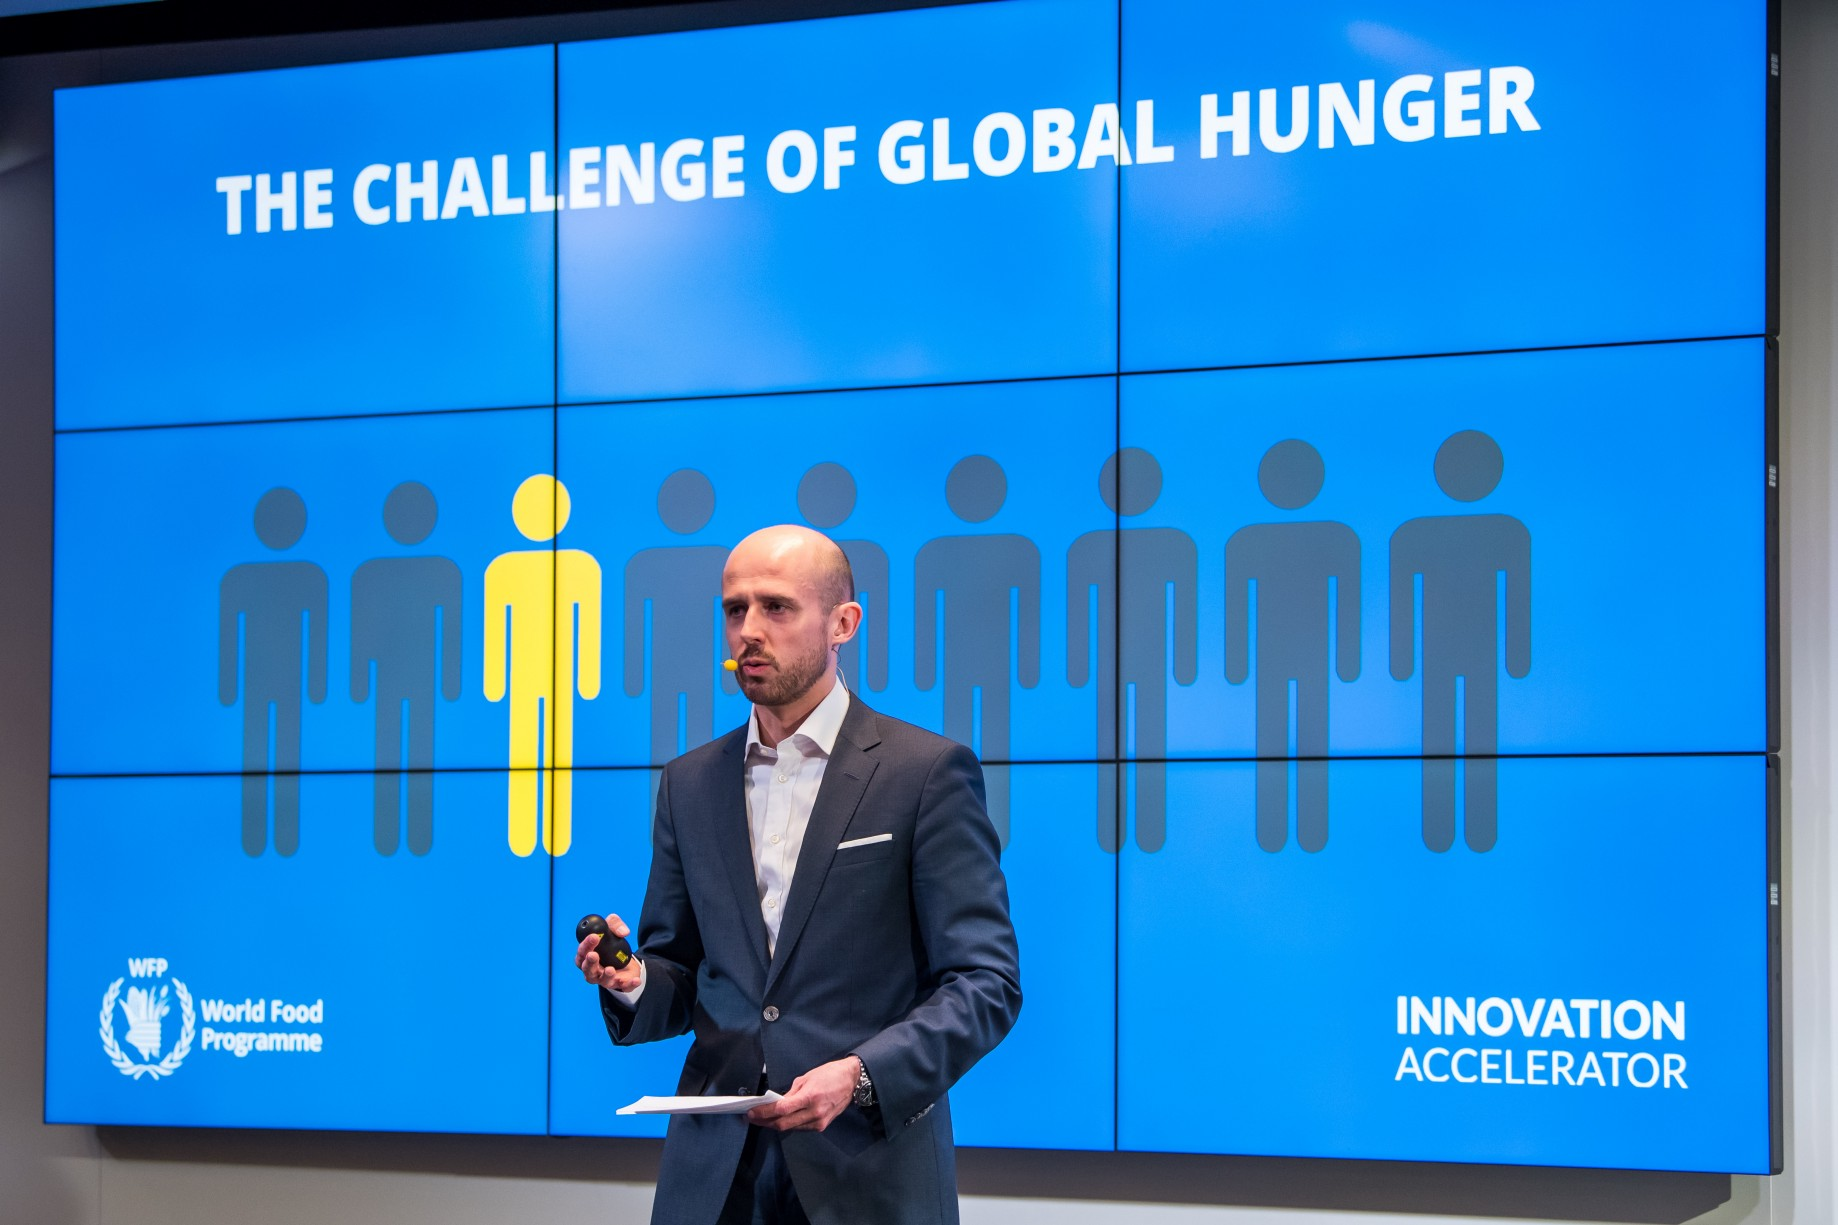 World Food Programme and Cargill team up with innovators to